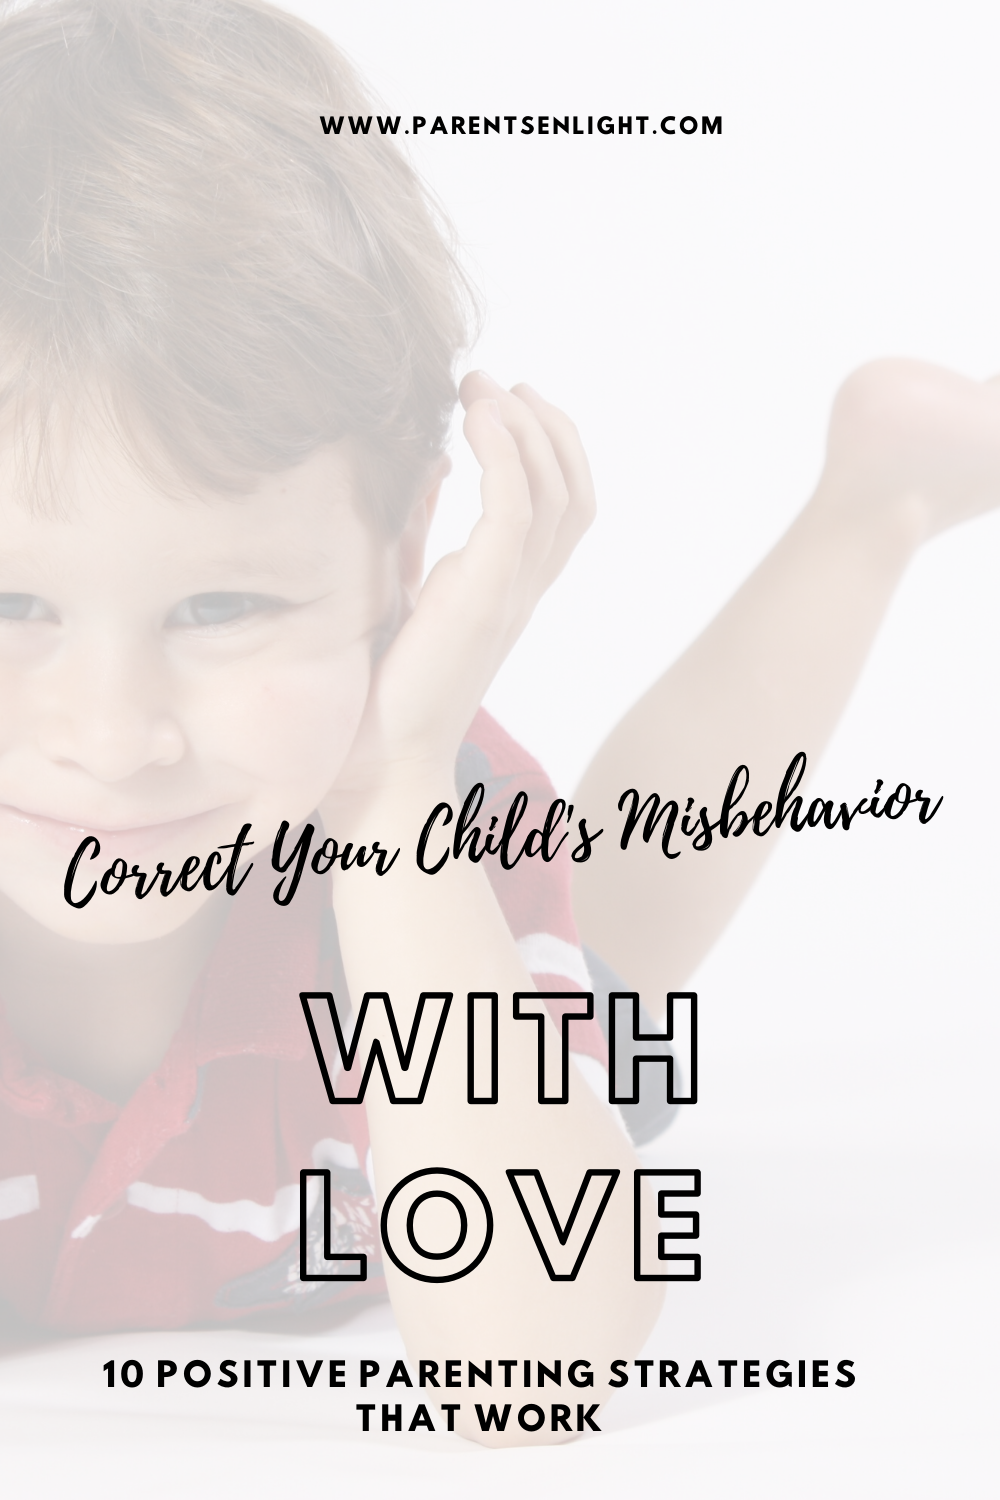 Seeing our children's misbehavior, we are often triggered to react in ways that perpetuate the same behavior we wish to change. We yell, we disconnect, we punish, and we make everything worse... This is why it happens and what we can do to upgrade our parenting #positiveparenting #parenting #buildingconnection #parentingtips #smartparenting #misbehavior #children'sbehavior